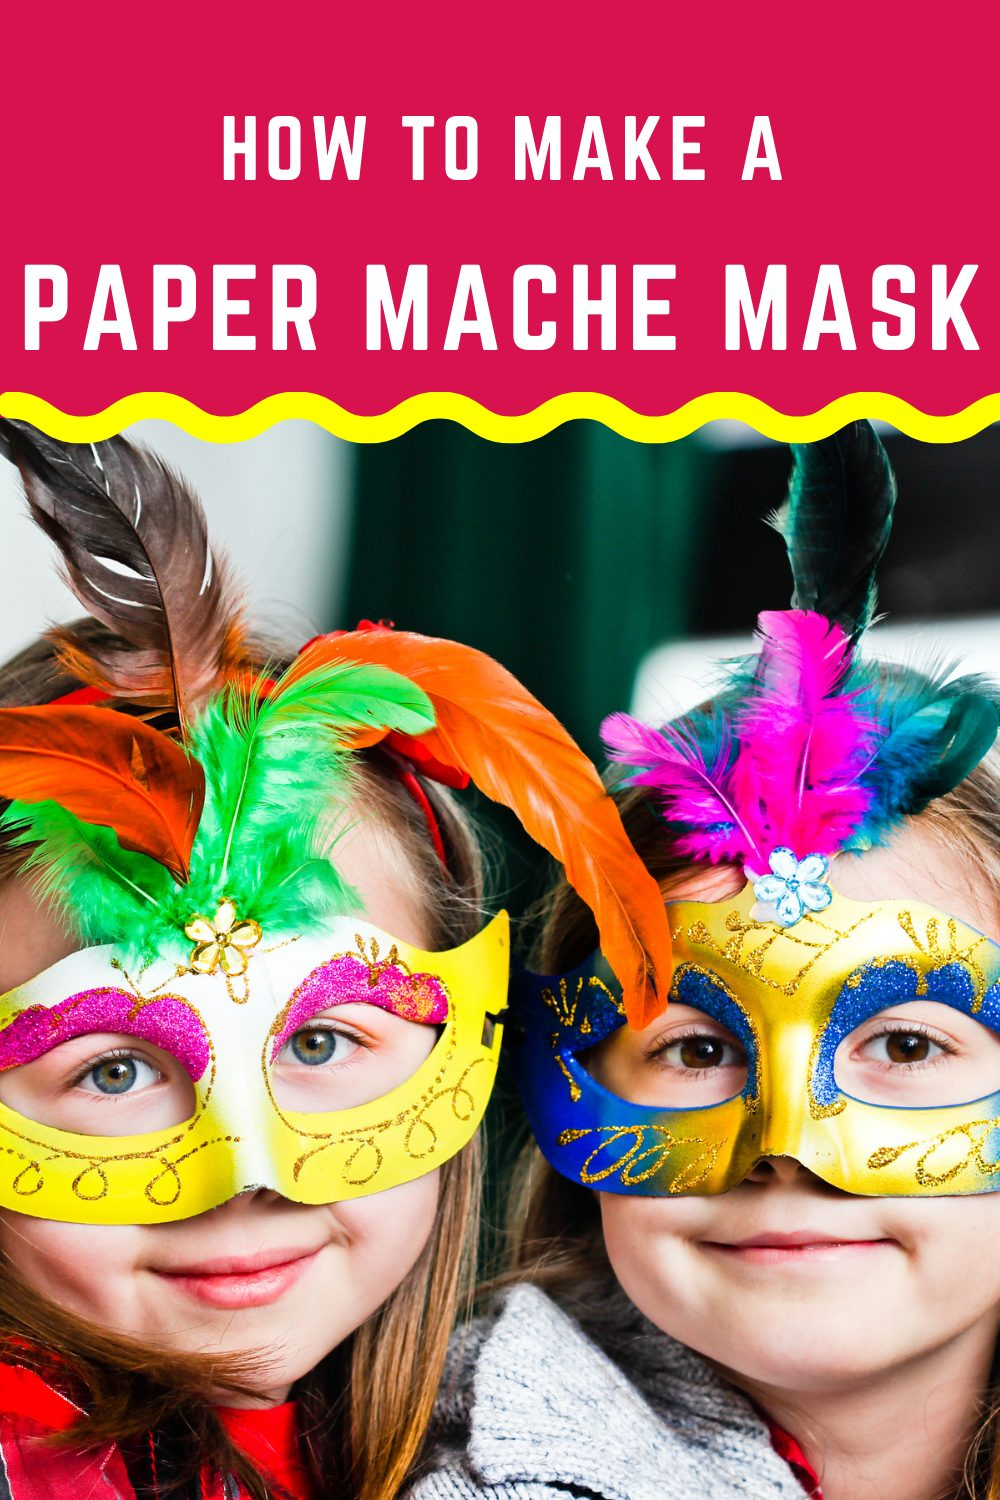 This step-by-step guide will help you to make a paper mache mask for your kids on any occasion from Halloween to masquerade parties. Head to our site for more details and get crafting with your kids! #papermachemask #kidscrafts #DIY #nymelrosefamily via @jennymelrose